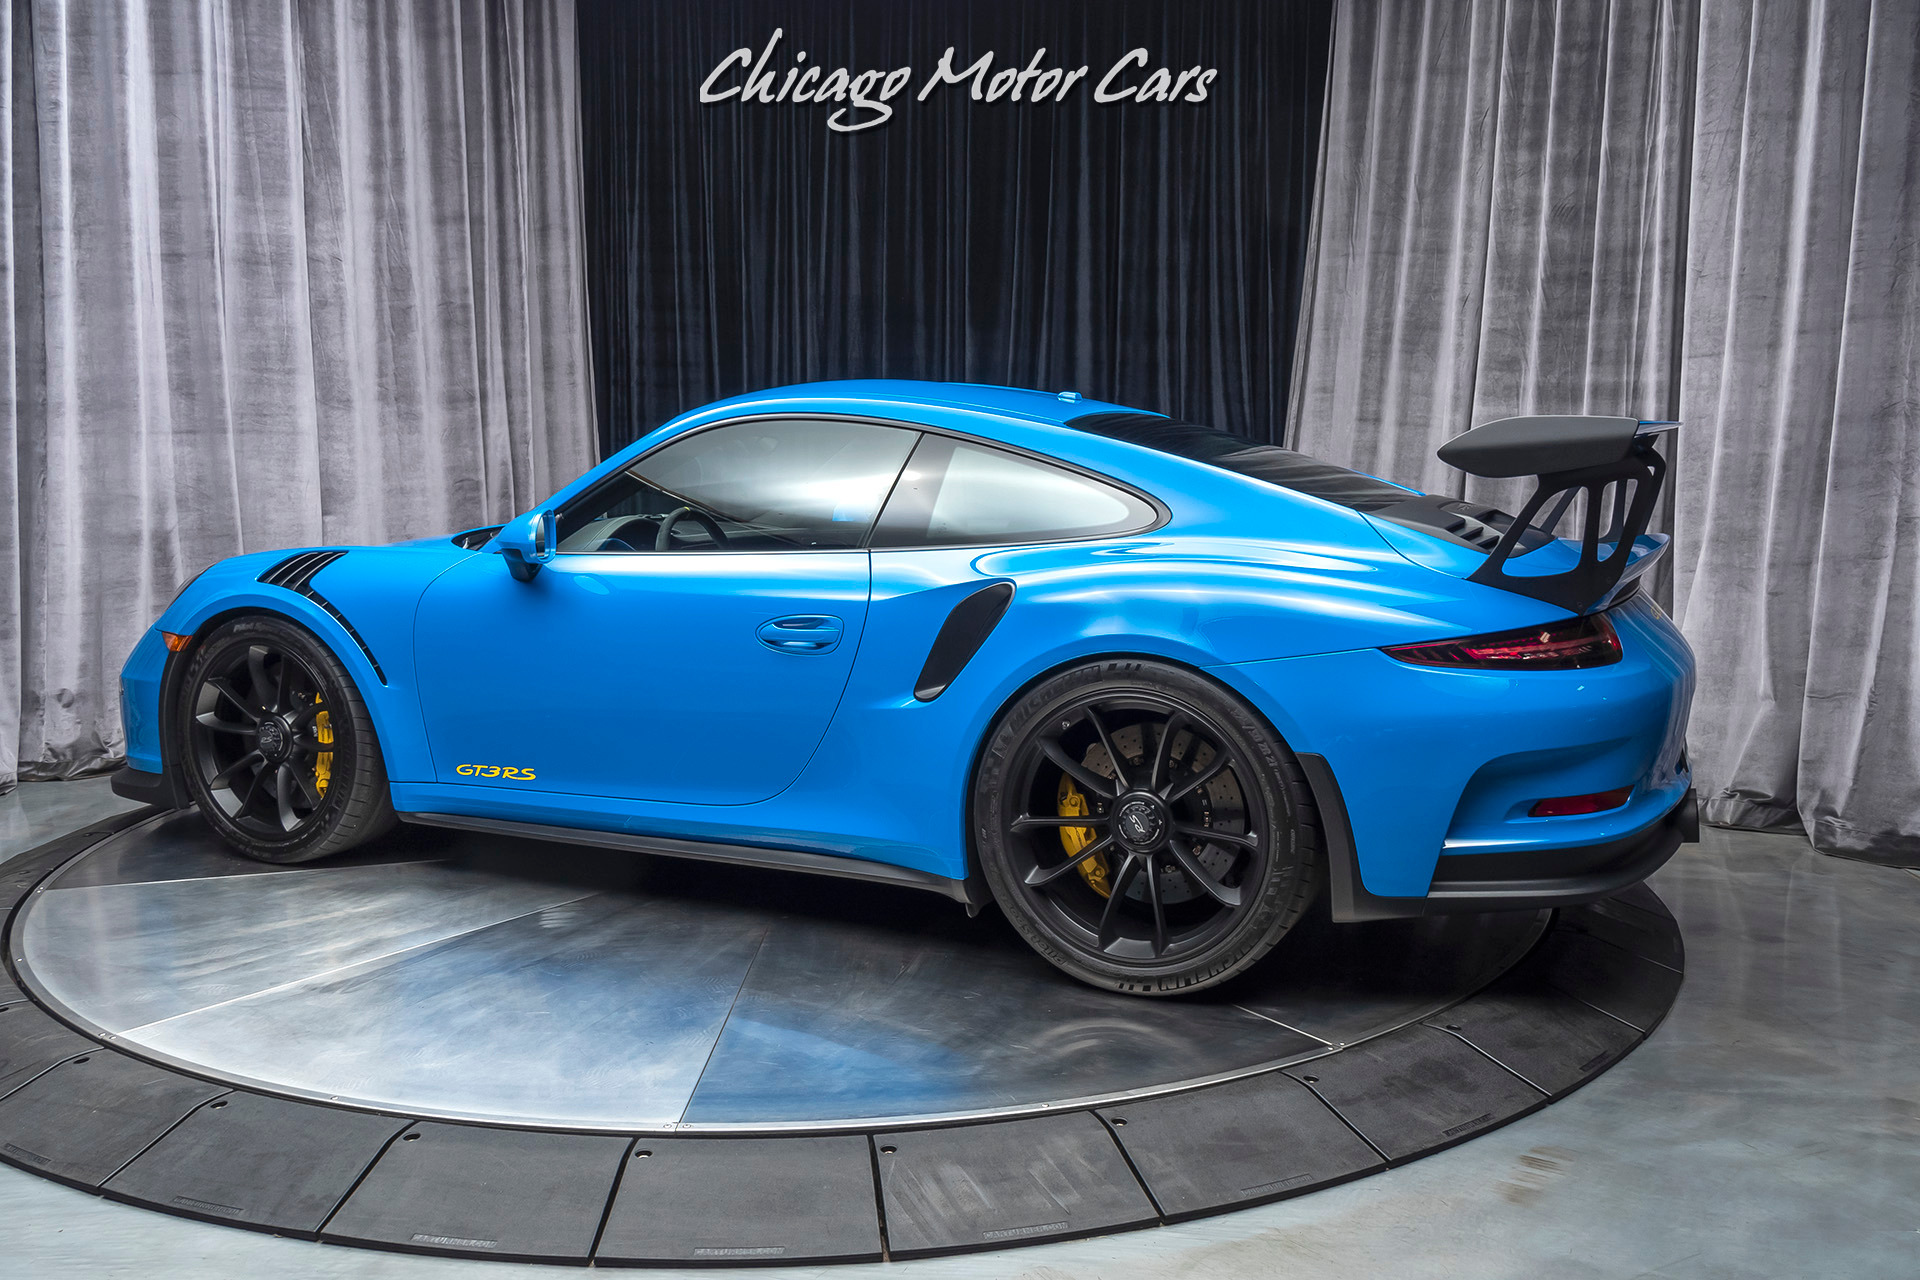 Used-2016-Porsche-911-GT3-RS-PTS-Voodoo-Blue-RARE-Only-3200-Miles-PCCBs-Axle-Lift-LOADED